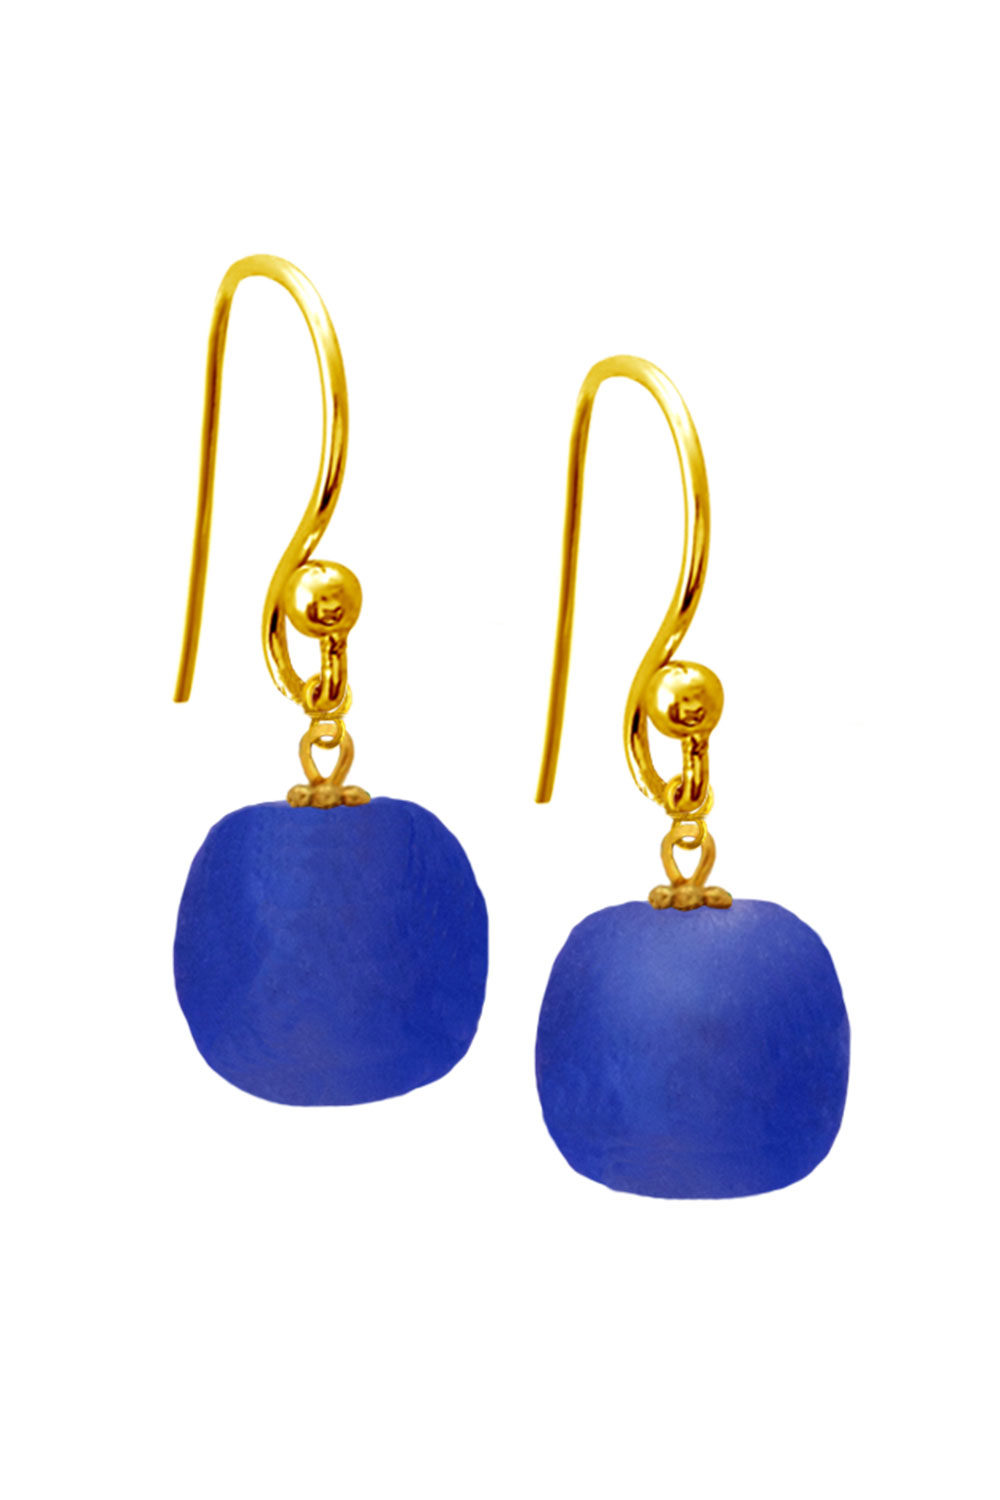 Blue Jiona Simple Earrings by SHIKHAZURI